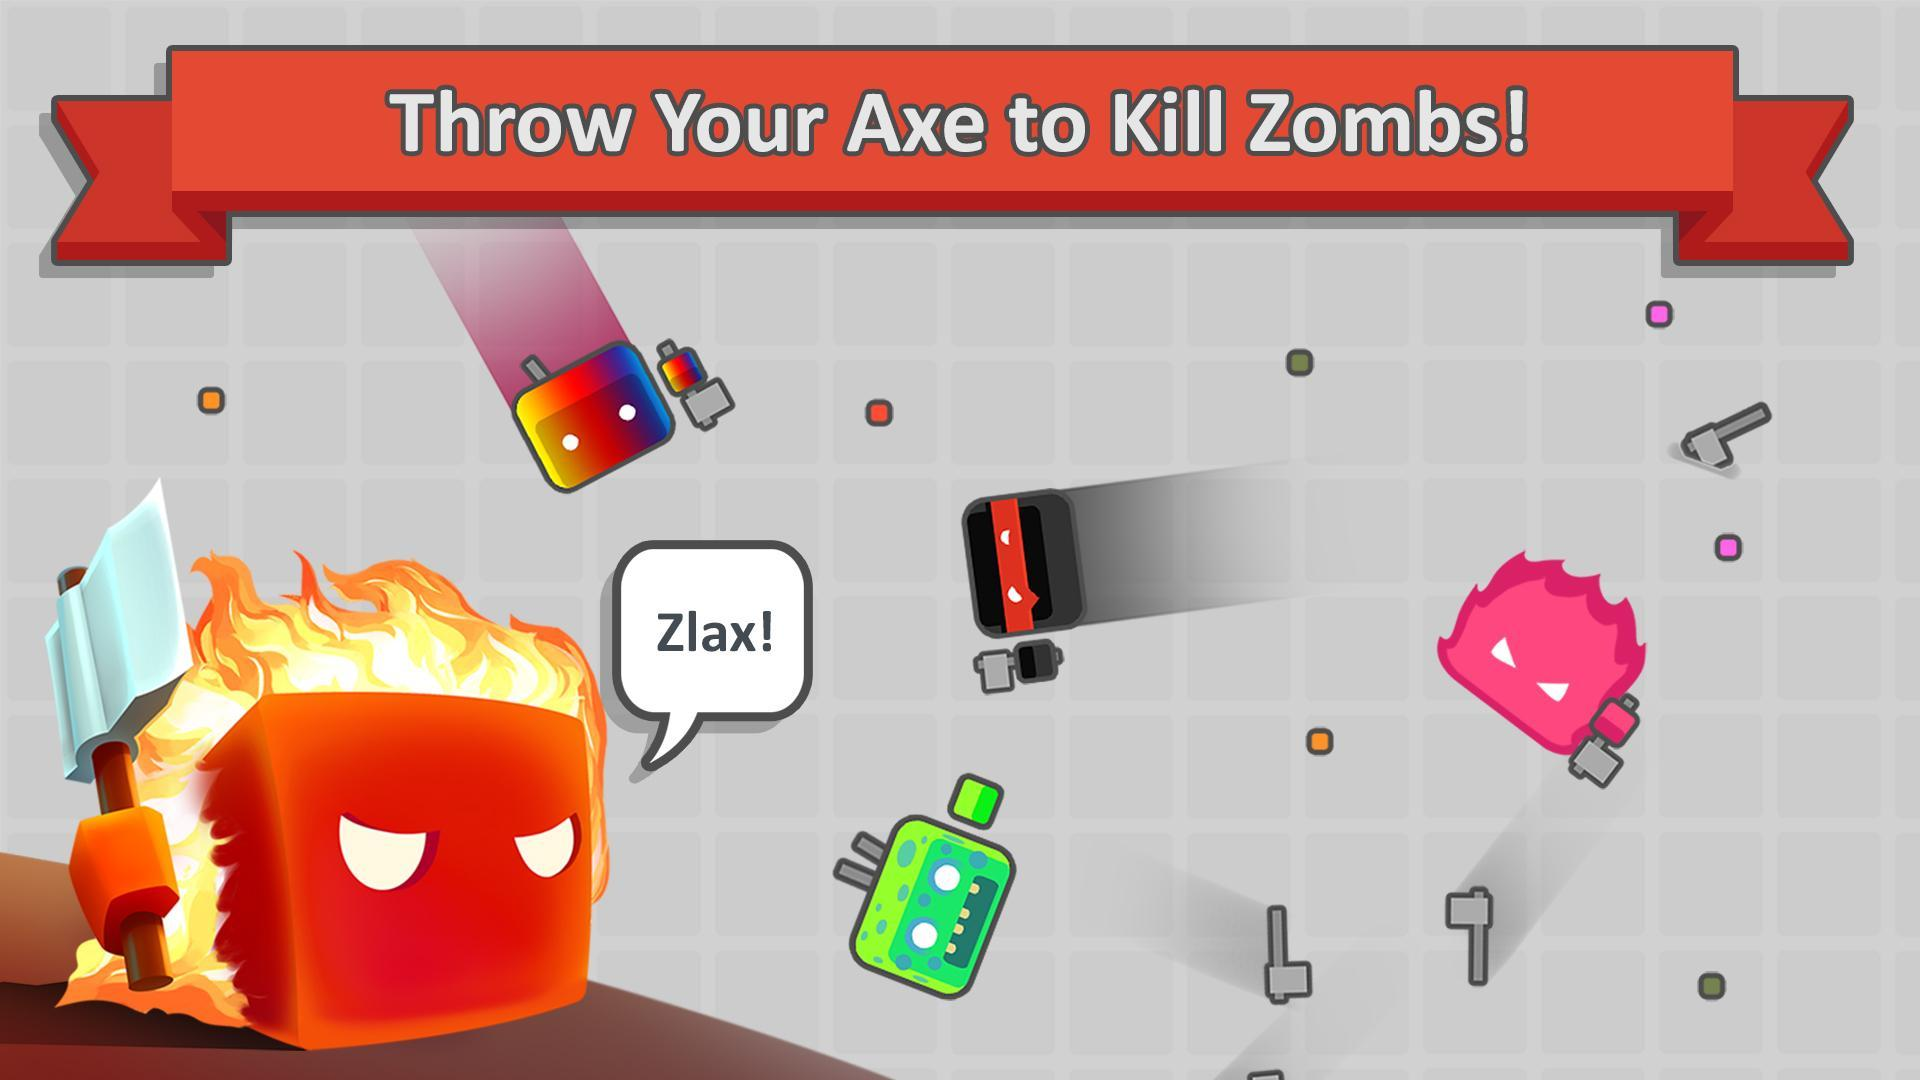 Zlax.io Zombs Luv Ax 1.9.1 Screenshot 6